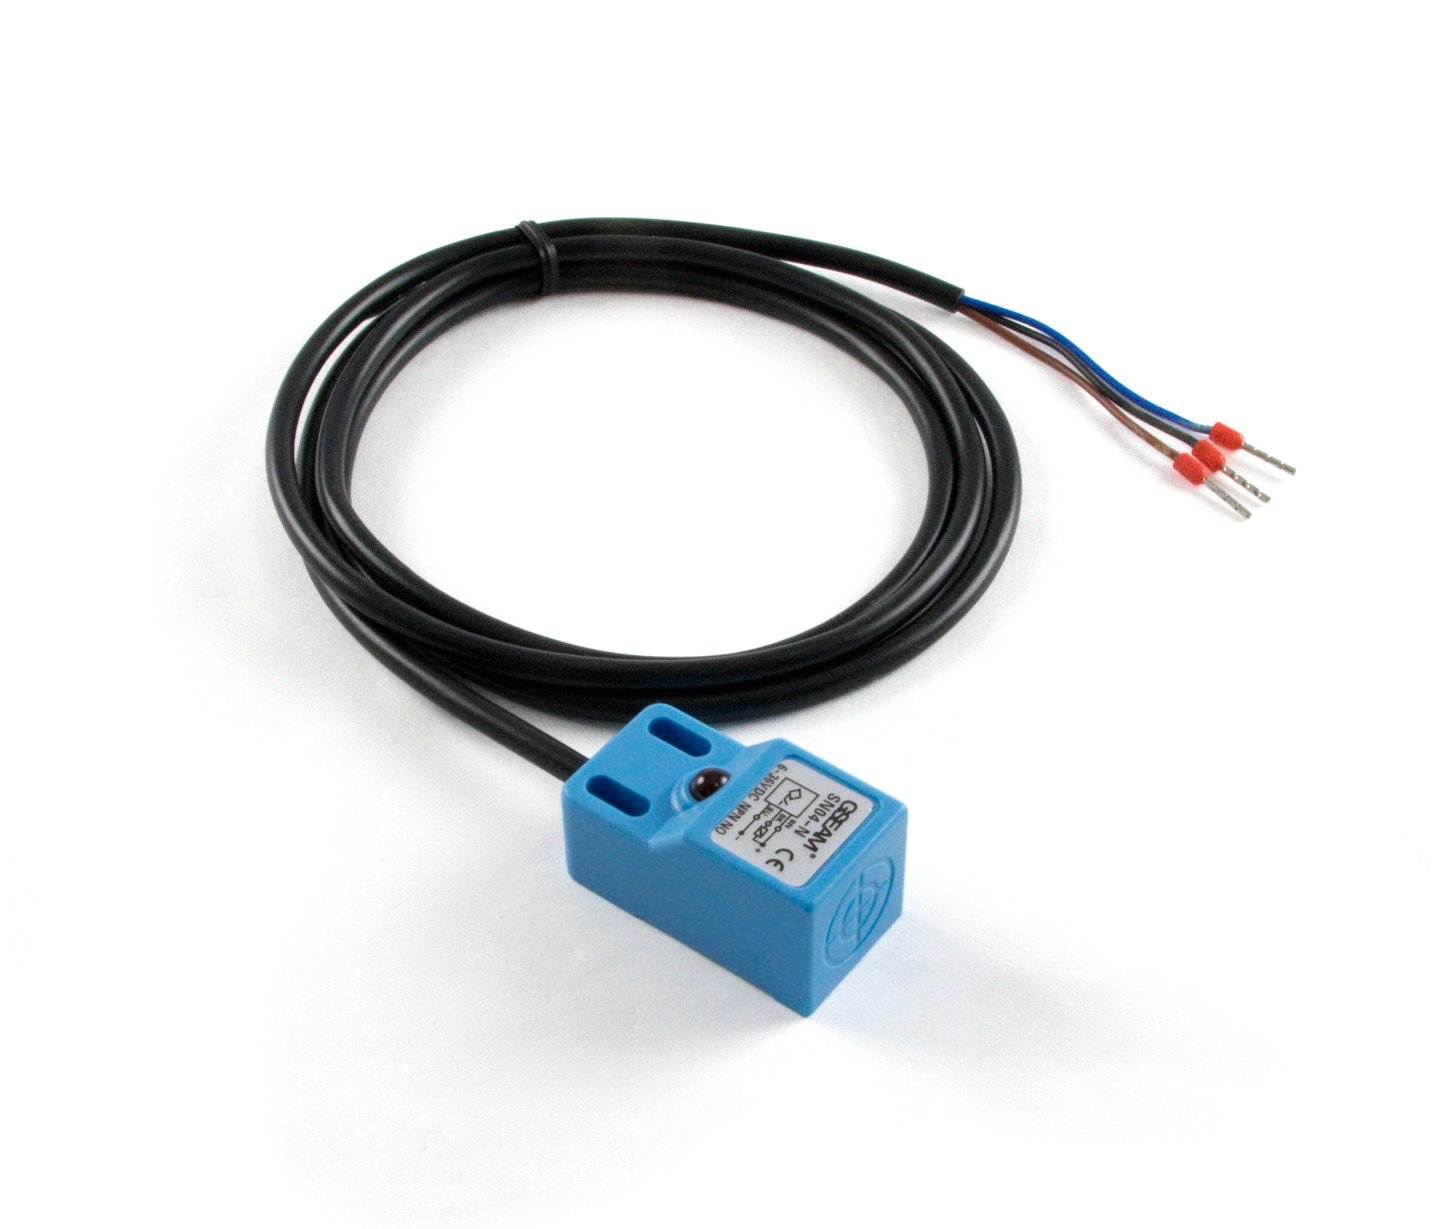 Sn04 N Inductive Proximity Sensor 5mm 3528 0 At Phidgets Sensors Capacitive